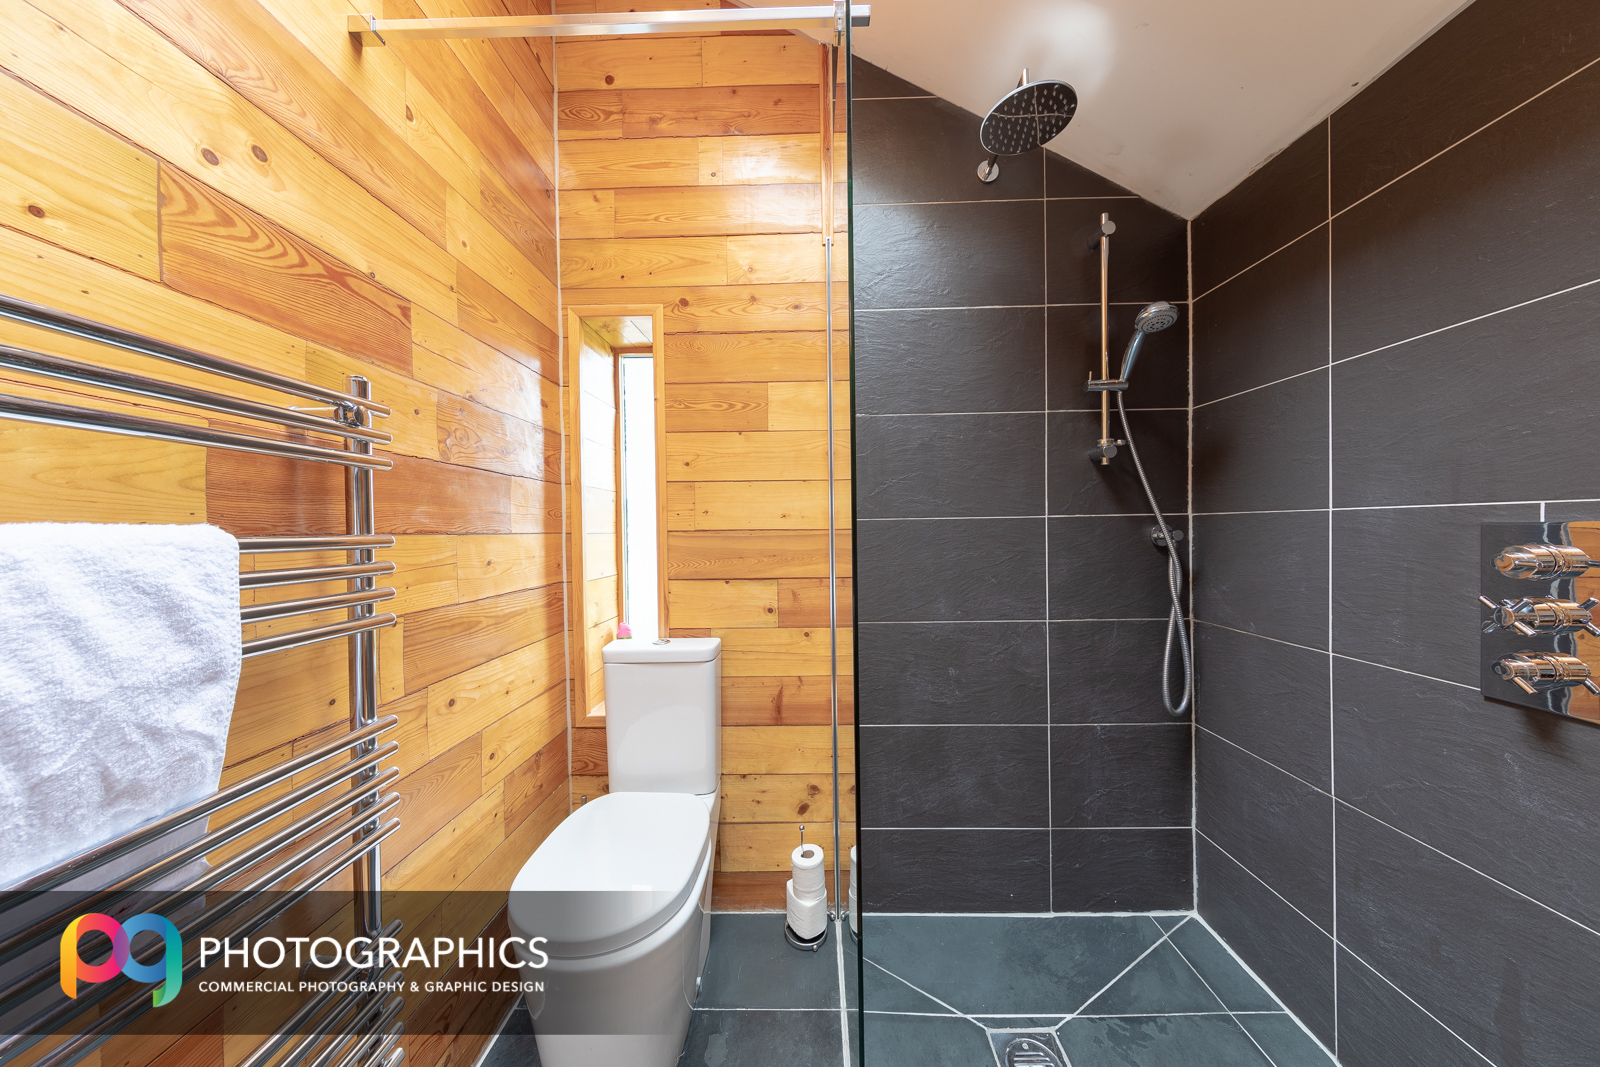 real-estate-property-photography-glasgow-edinburgh-scotland-7.jpg